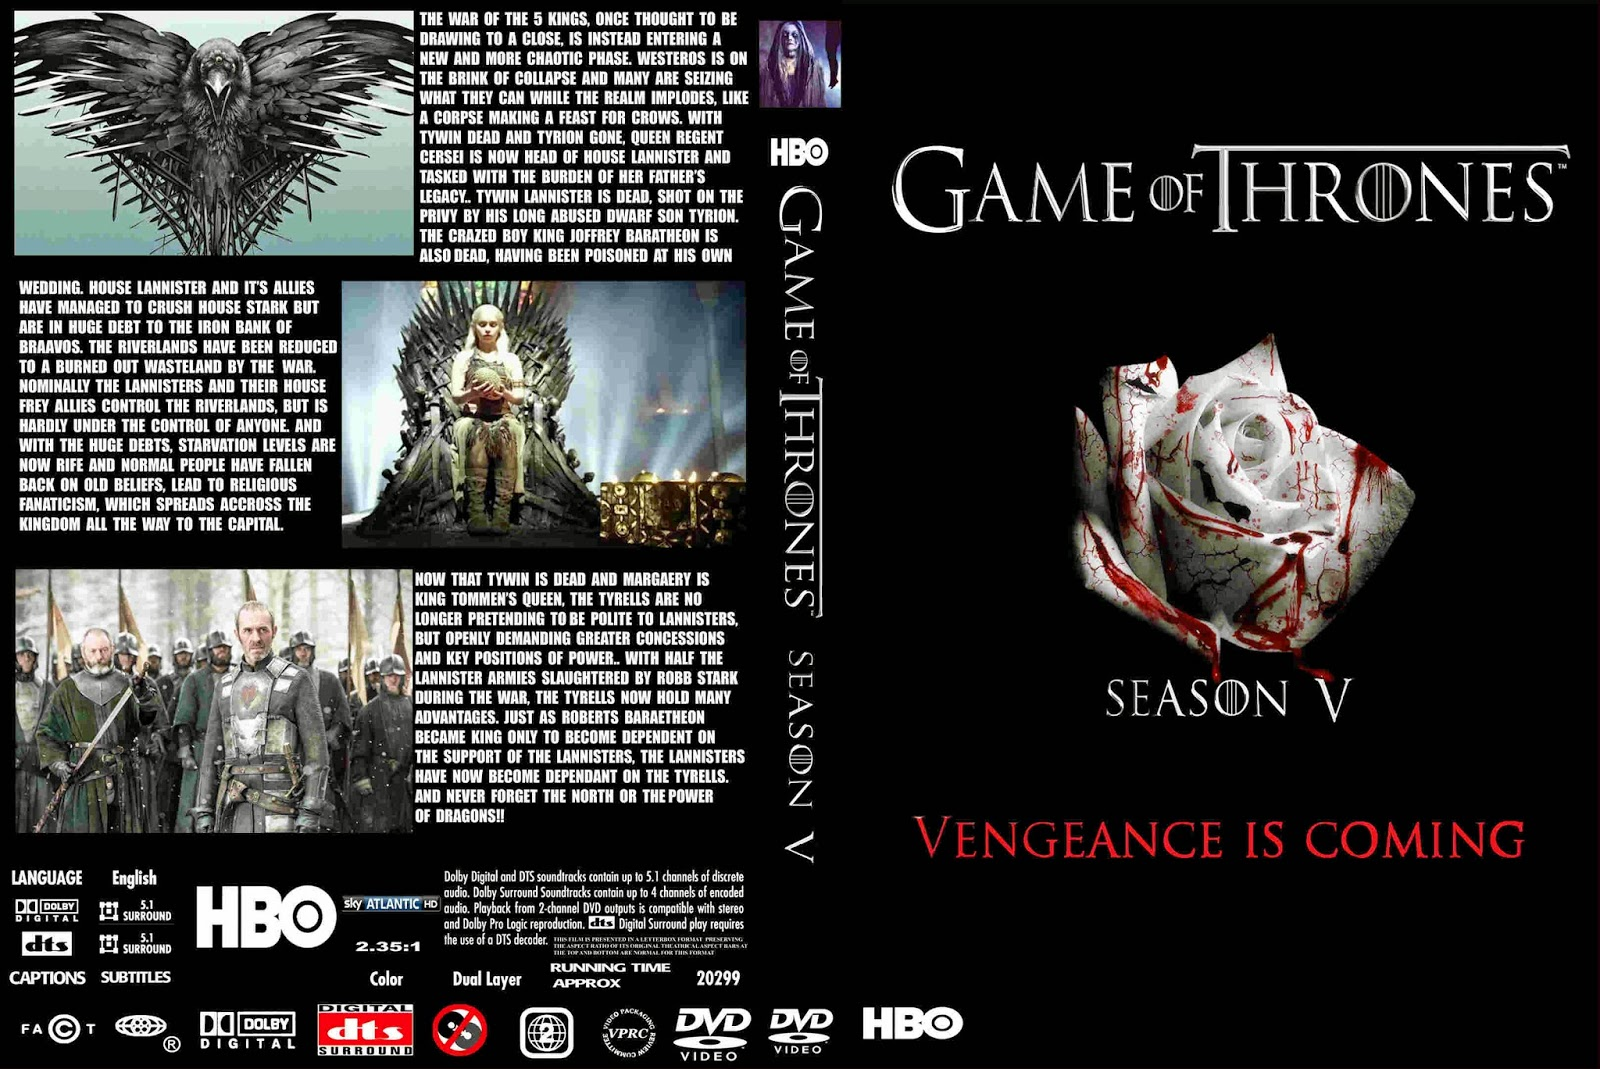 game of thrones season 3 dvd cover. Black Bedroom Furniture Sets. Home Design Ideas